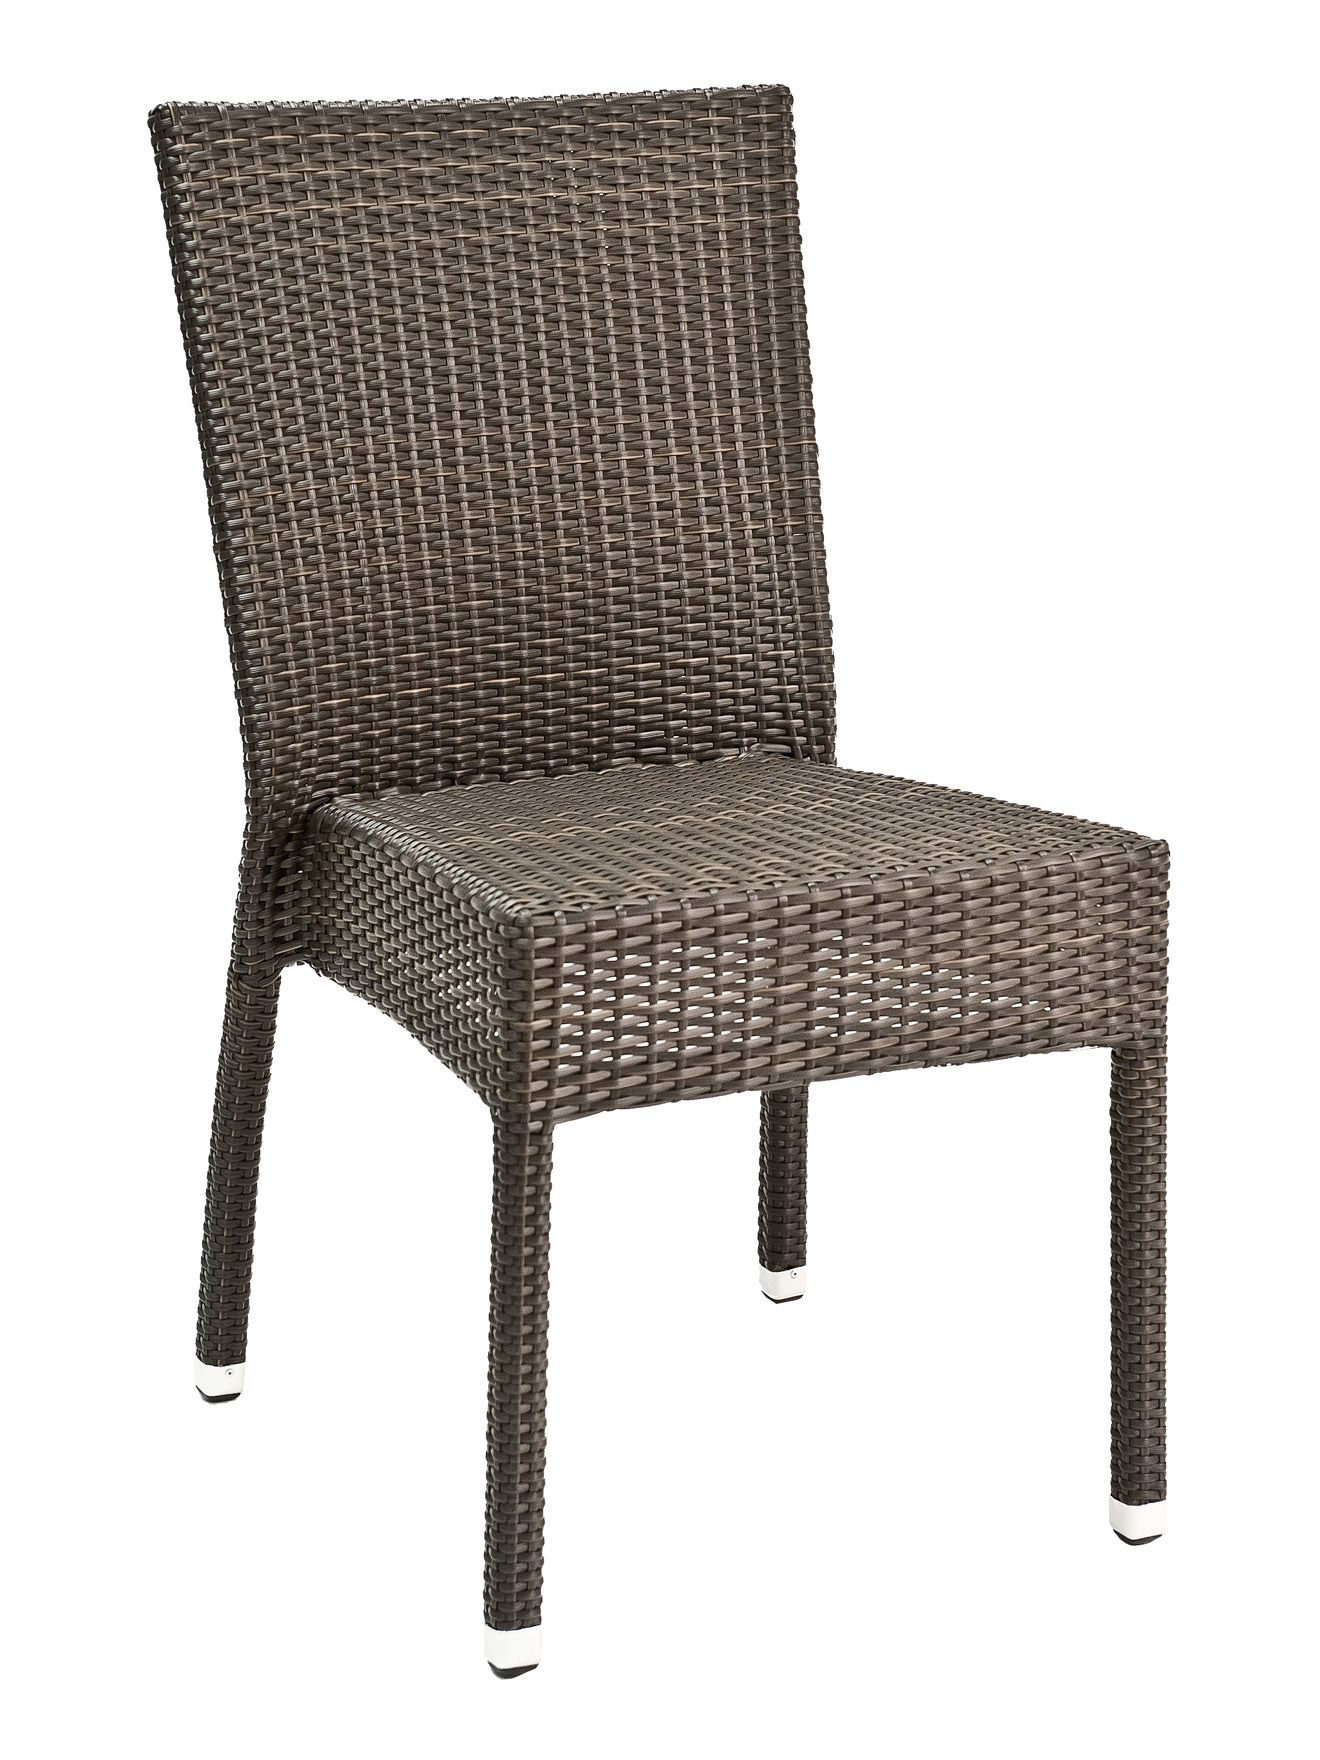 Wicker Side Chair Key West Wicker Side Chair Sw02c Commercial Restaurant